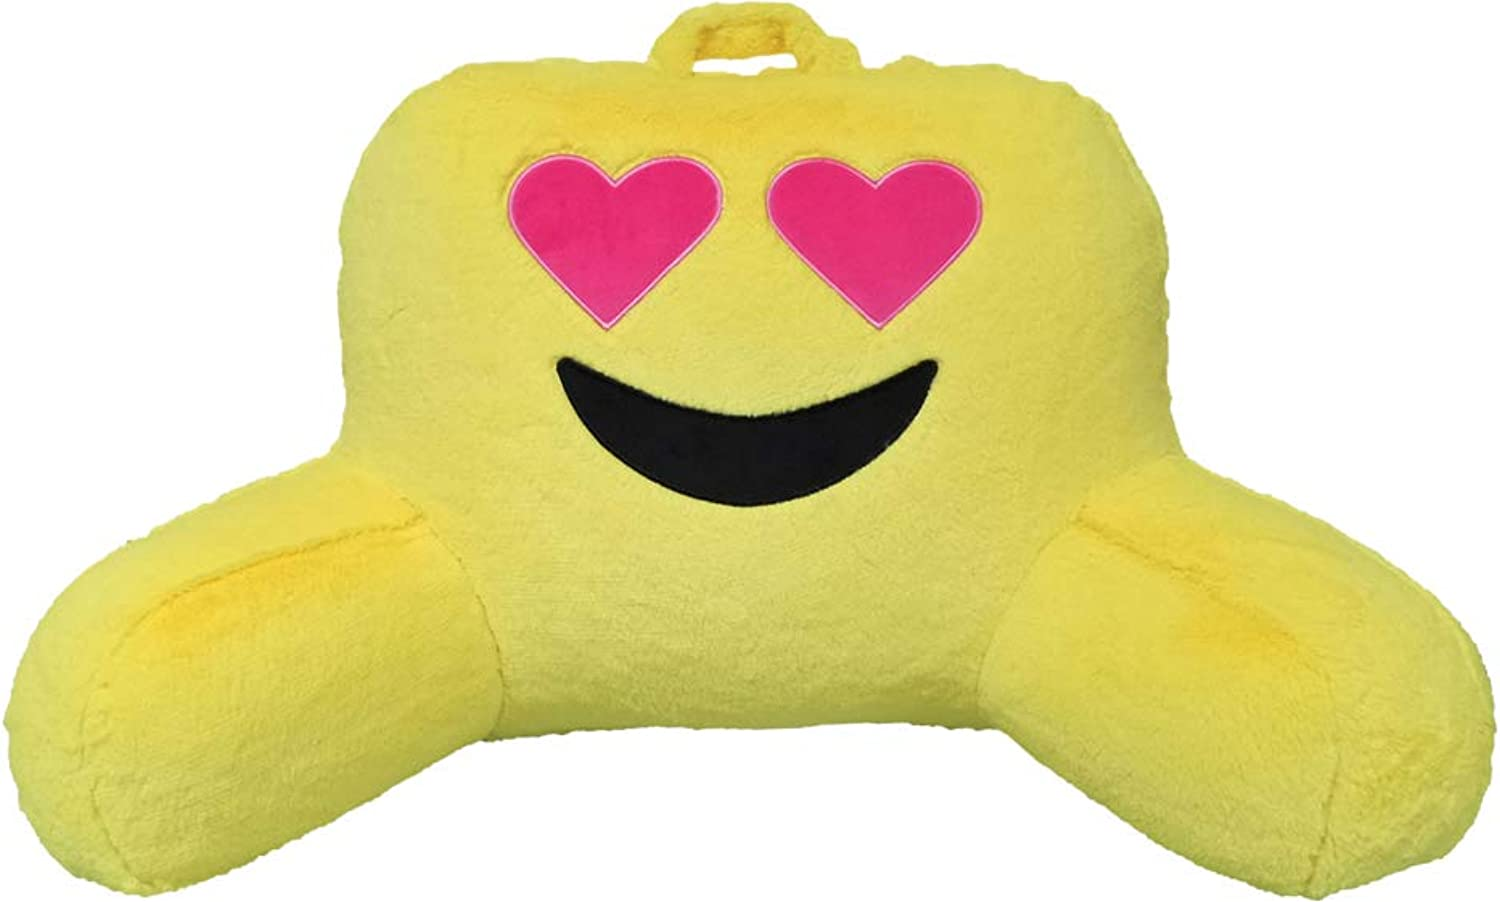 Iscream Heart Eyes Emoji Silky Soft Furry Lounge and Reading Bed Support Pillow